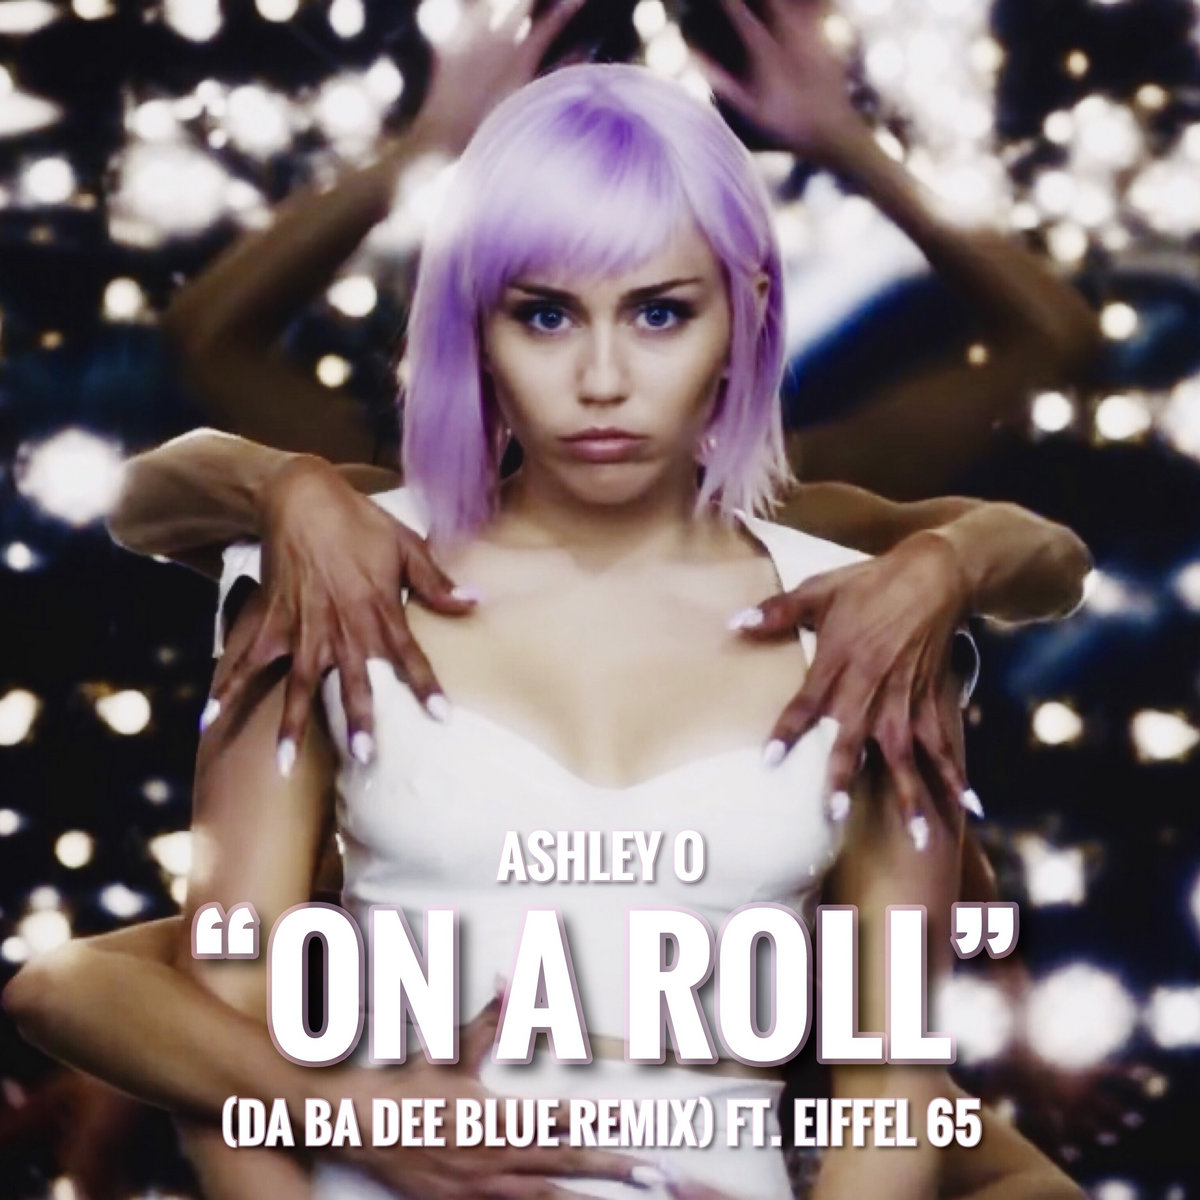 Ashley O - On A Roll (Da Ba Dee Blue Remix) ft  Eiffel 65